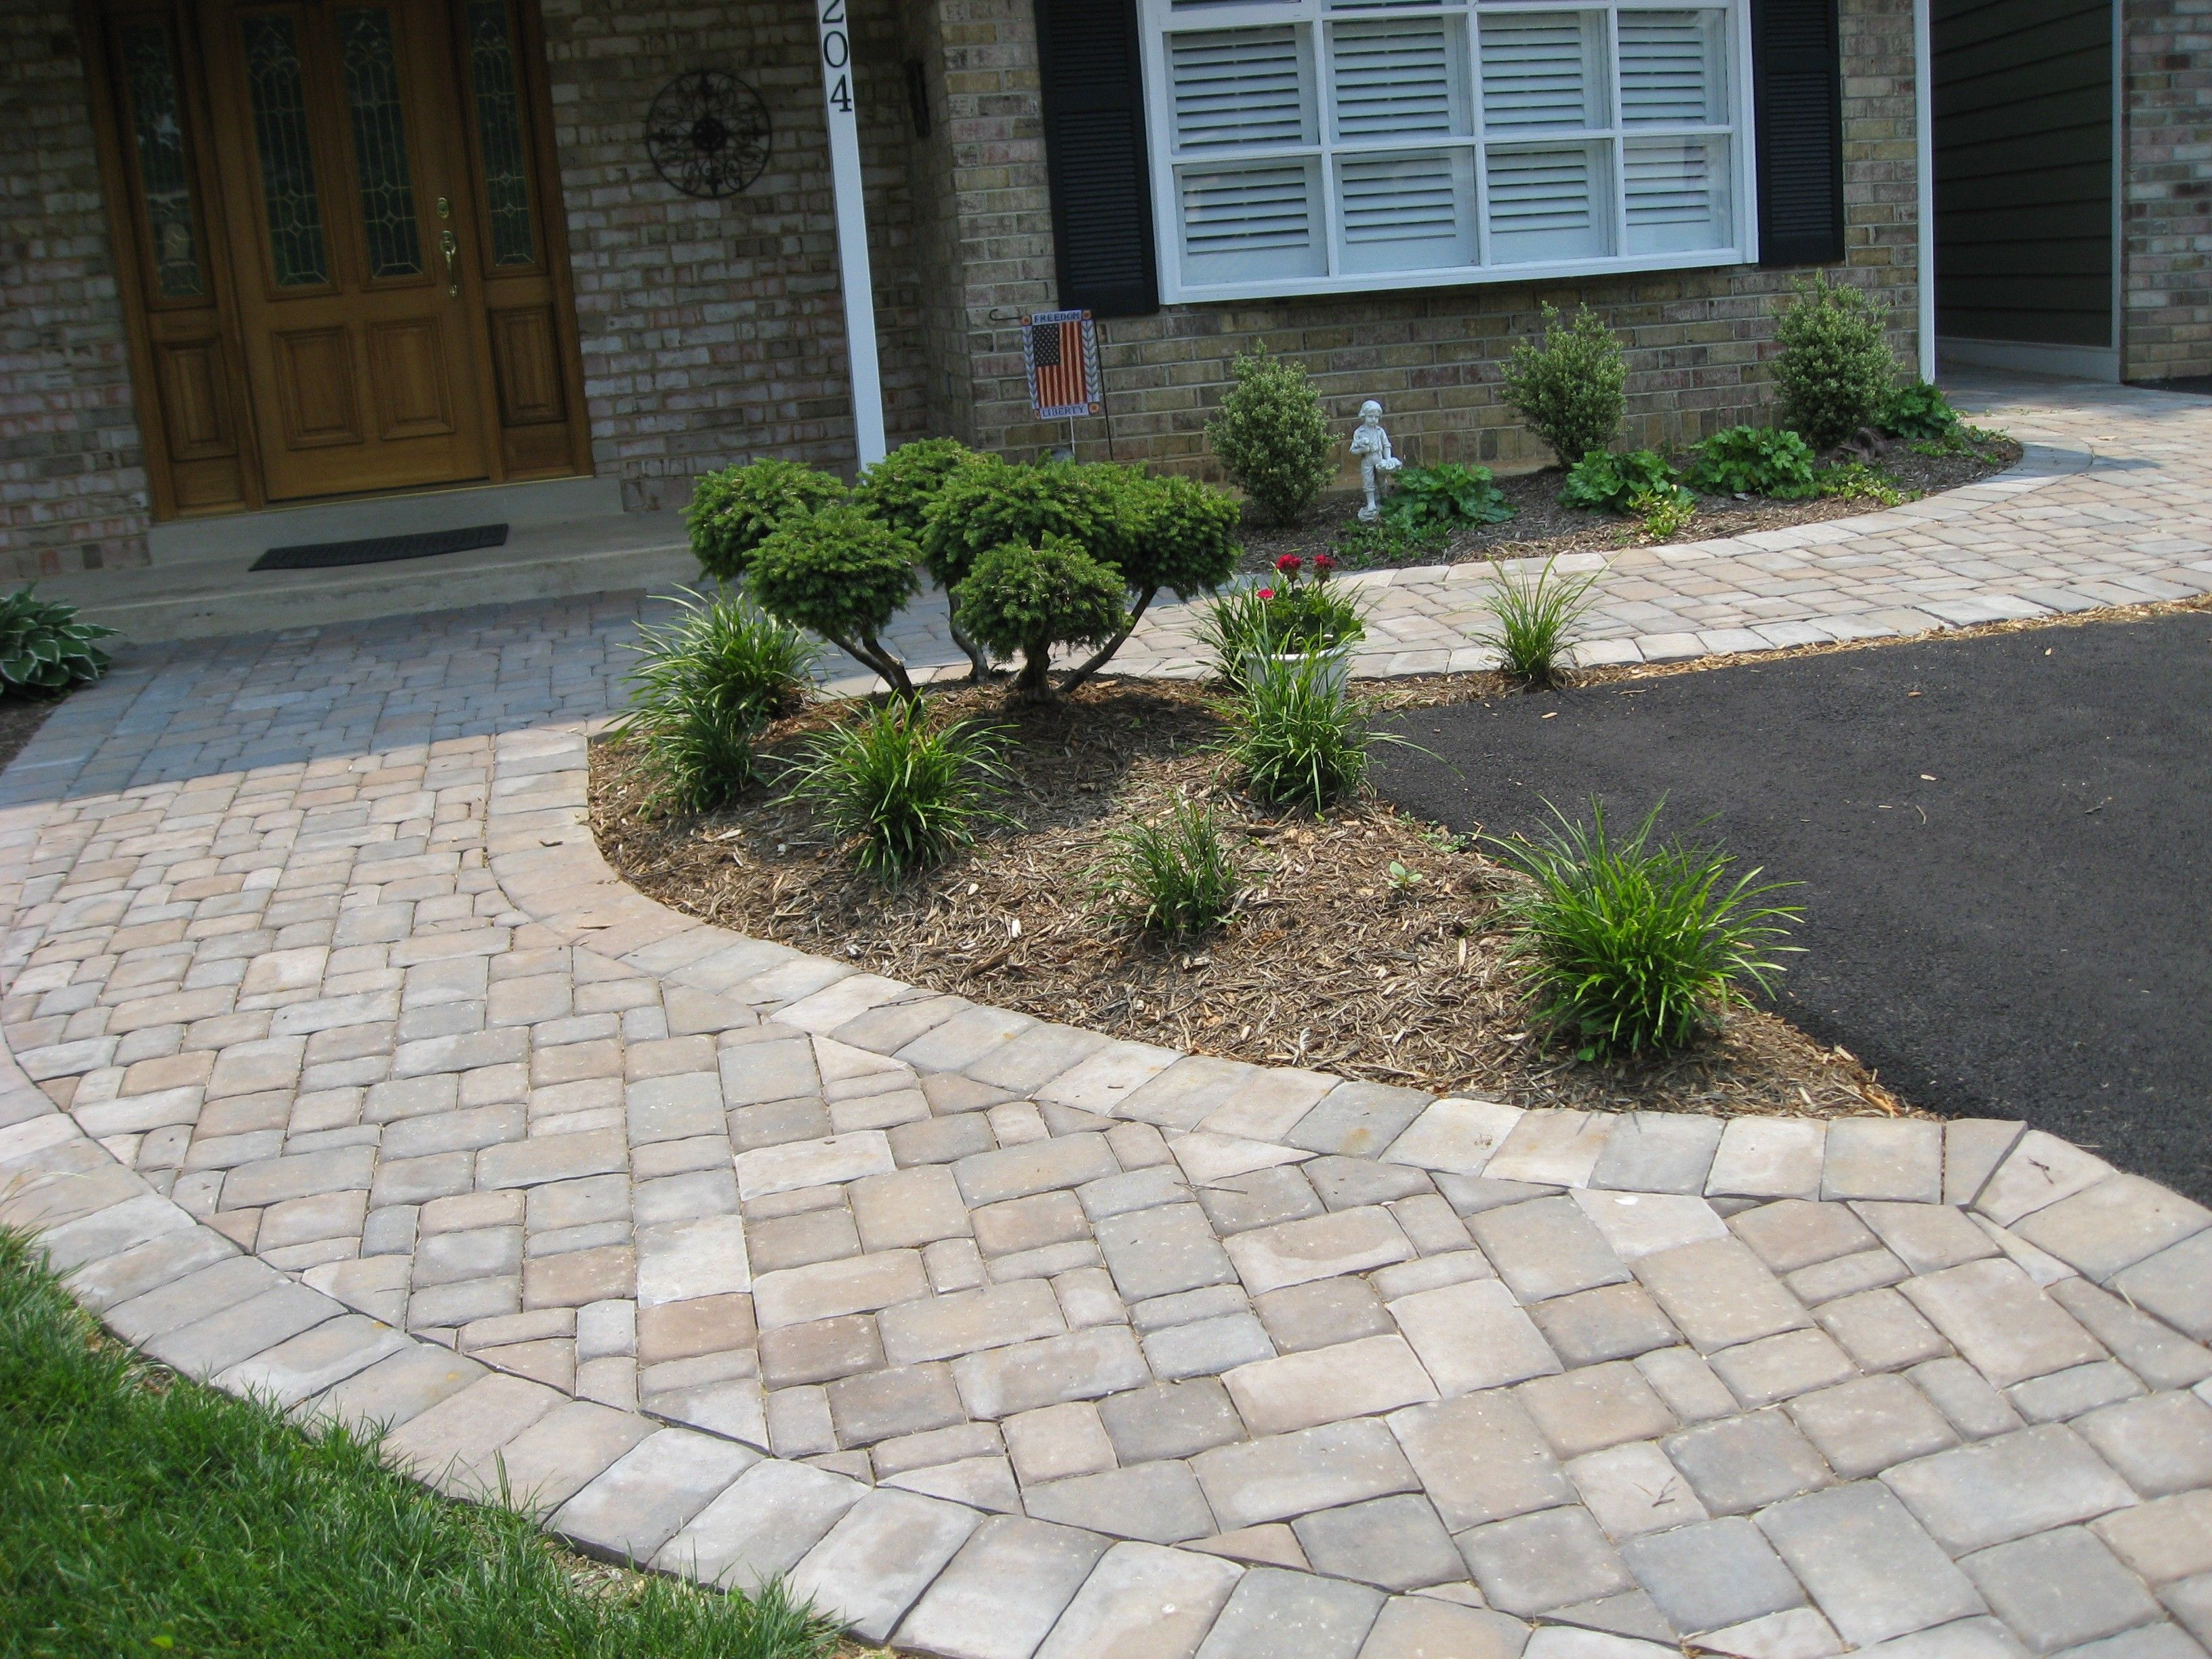 Exterior Curved Paver Walkway Without Cutting Installing A Brick Designs How To Do Diy Project